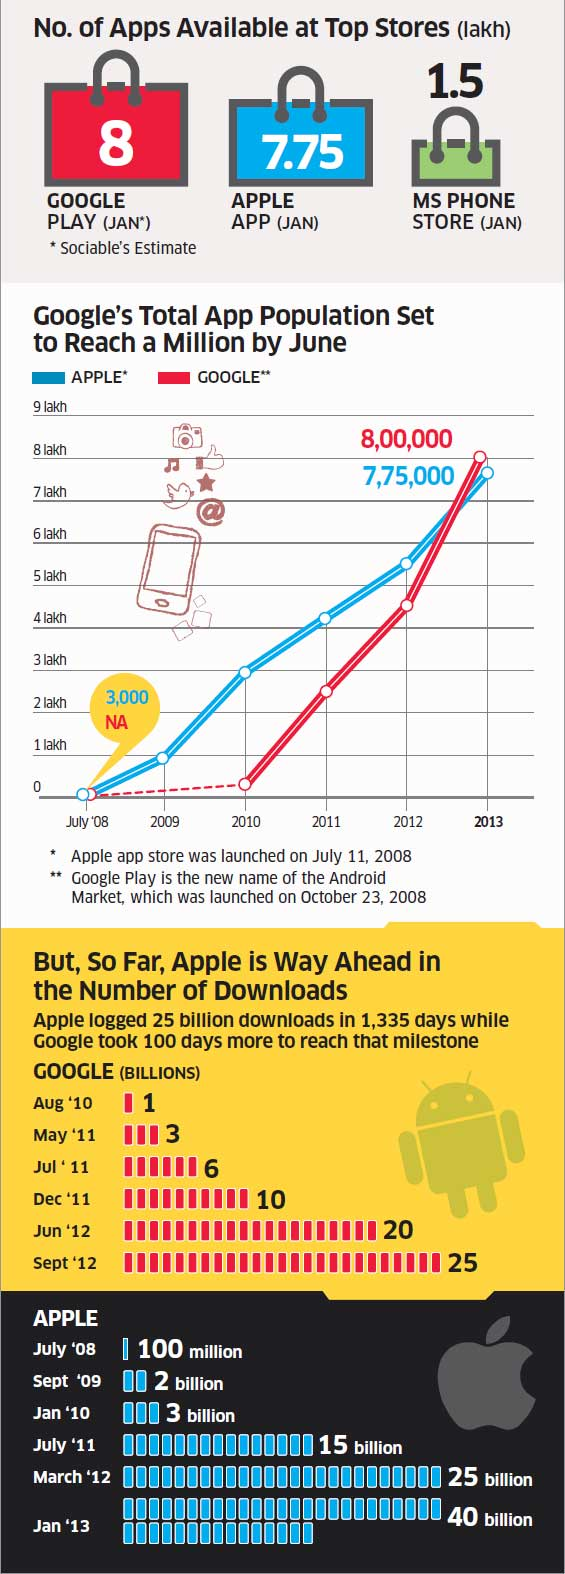 Offi cially, * Google's app count is 700,000 as of October 30, 2012.